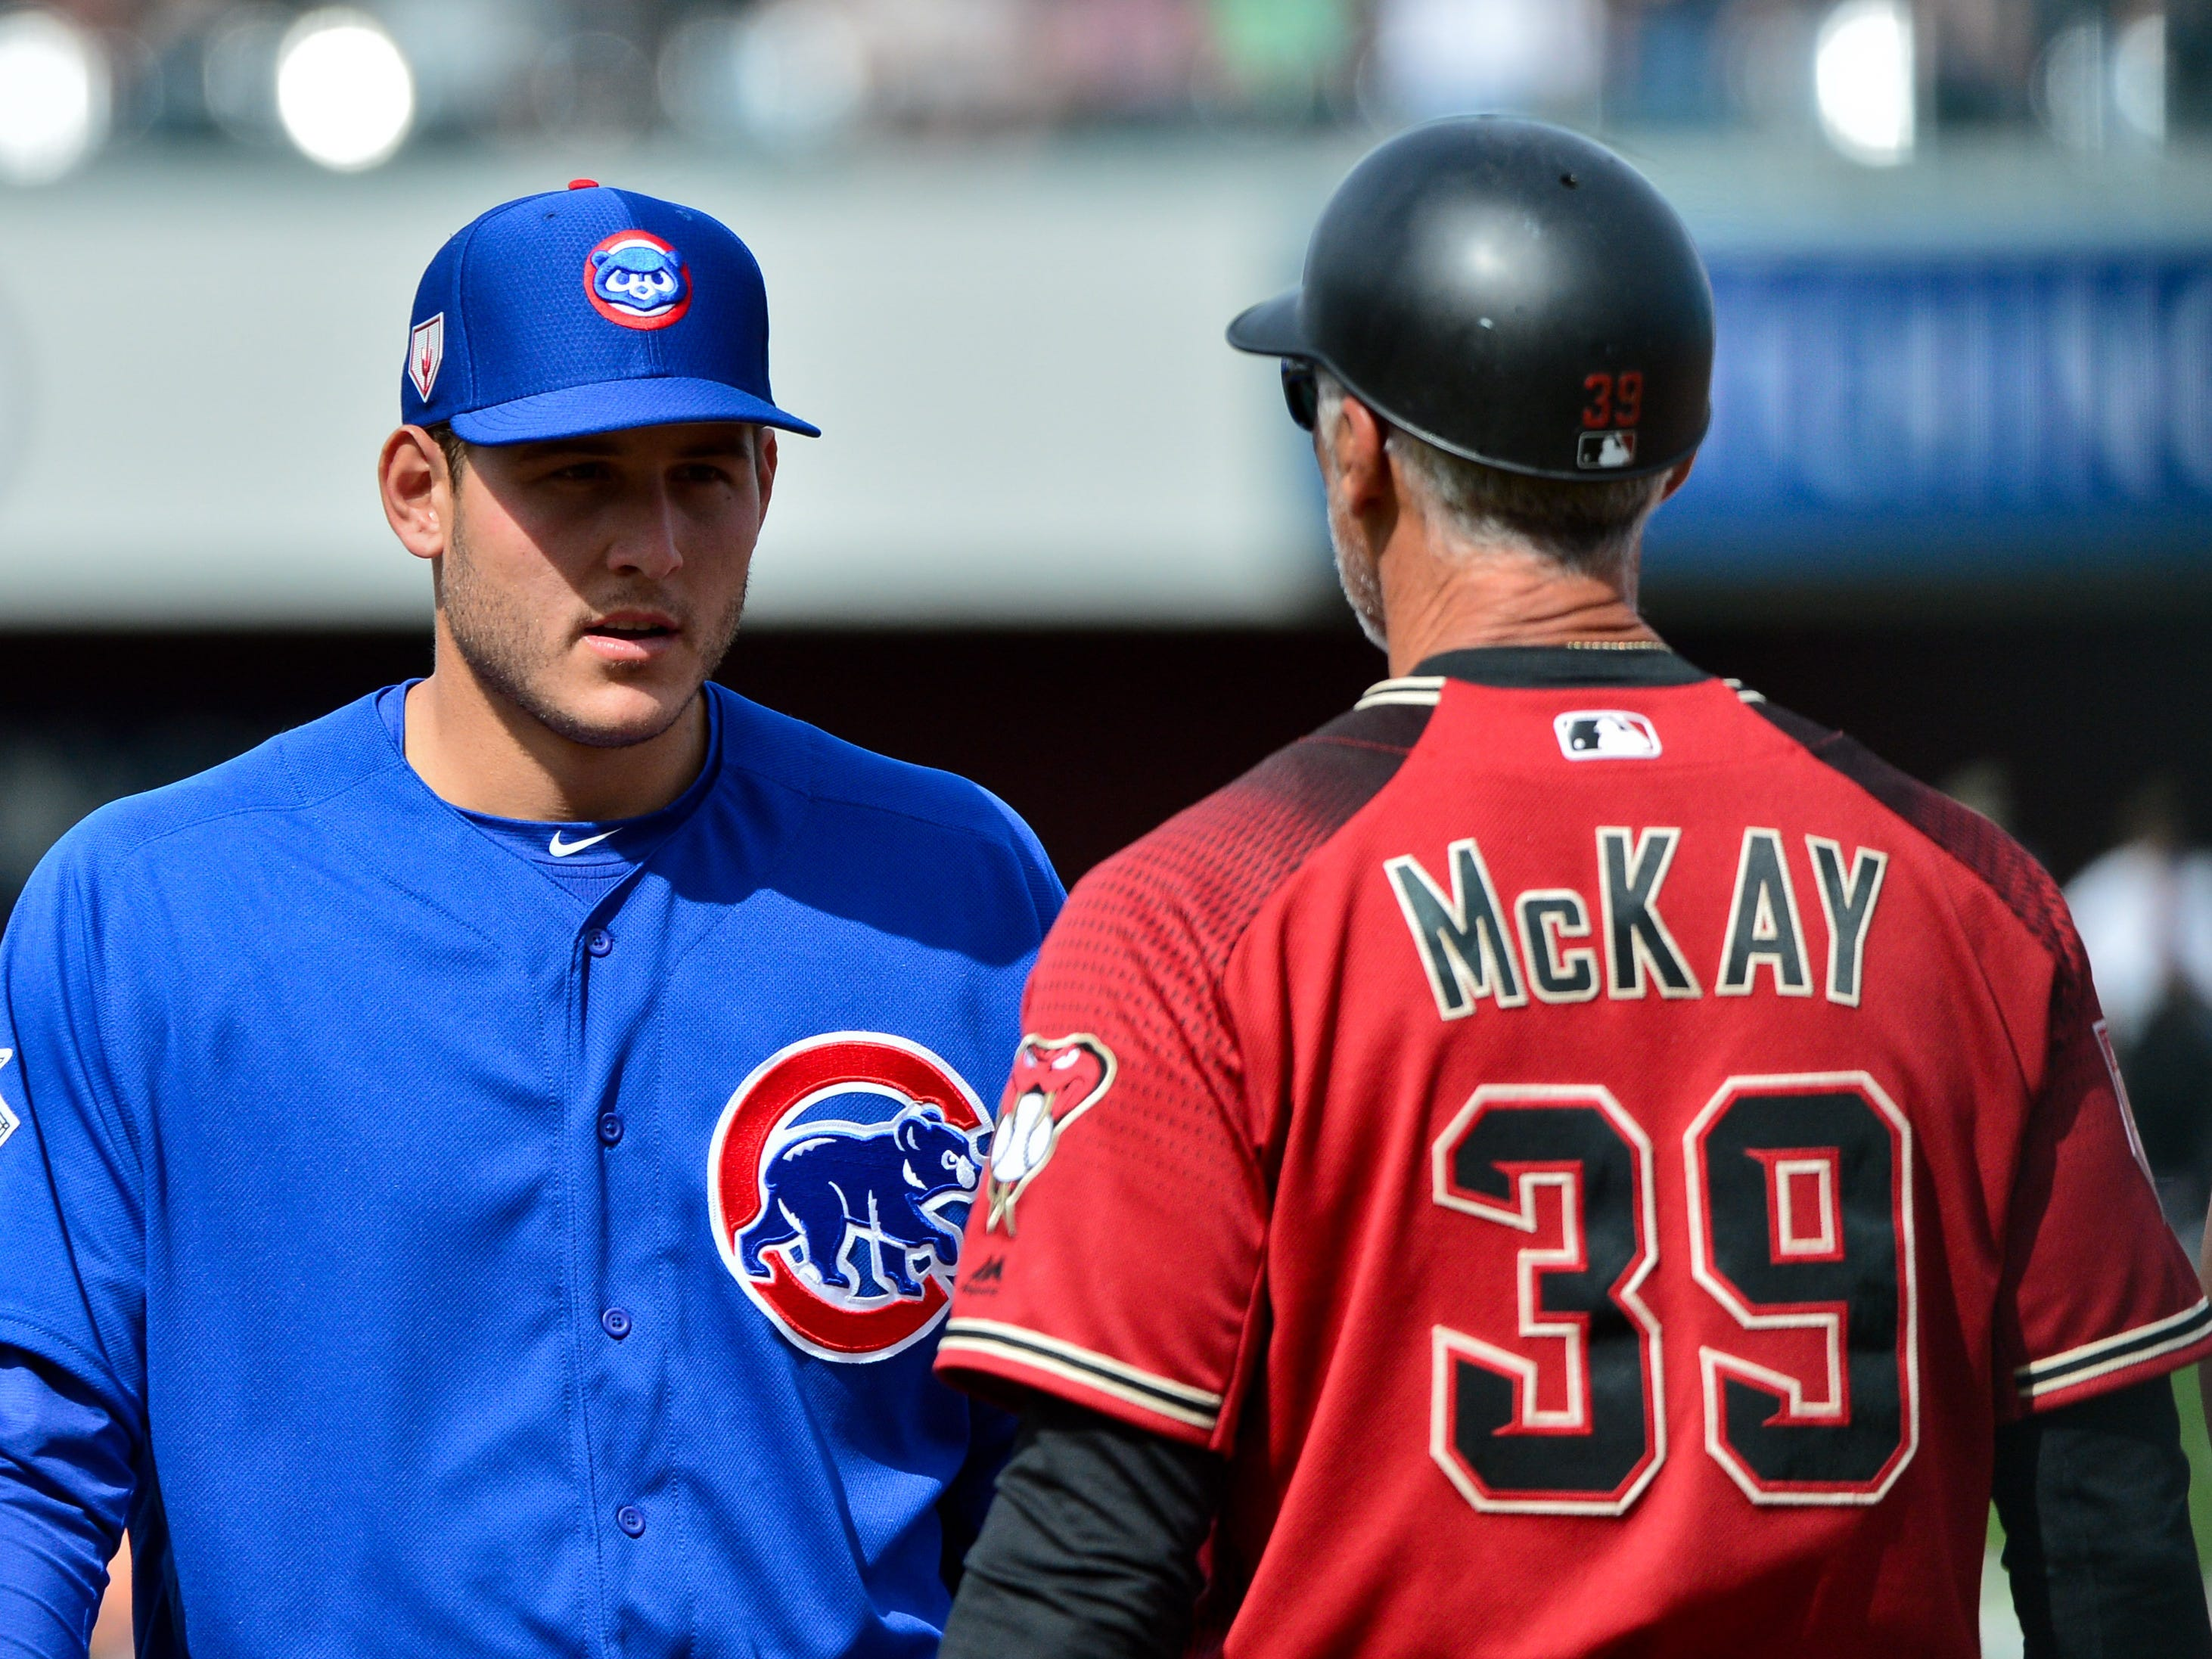 Feb 26, 2019: Chicago Cubs first baseman Anthony Rizzo (44) talks with Arizona Diamondbacks first base coach Dave McKay (39) during a break in play in the second inning at Sloan Park.